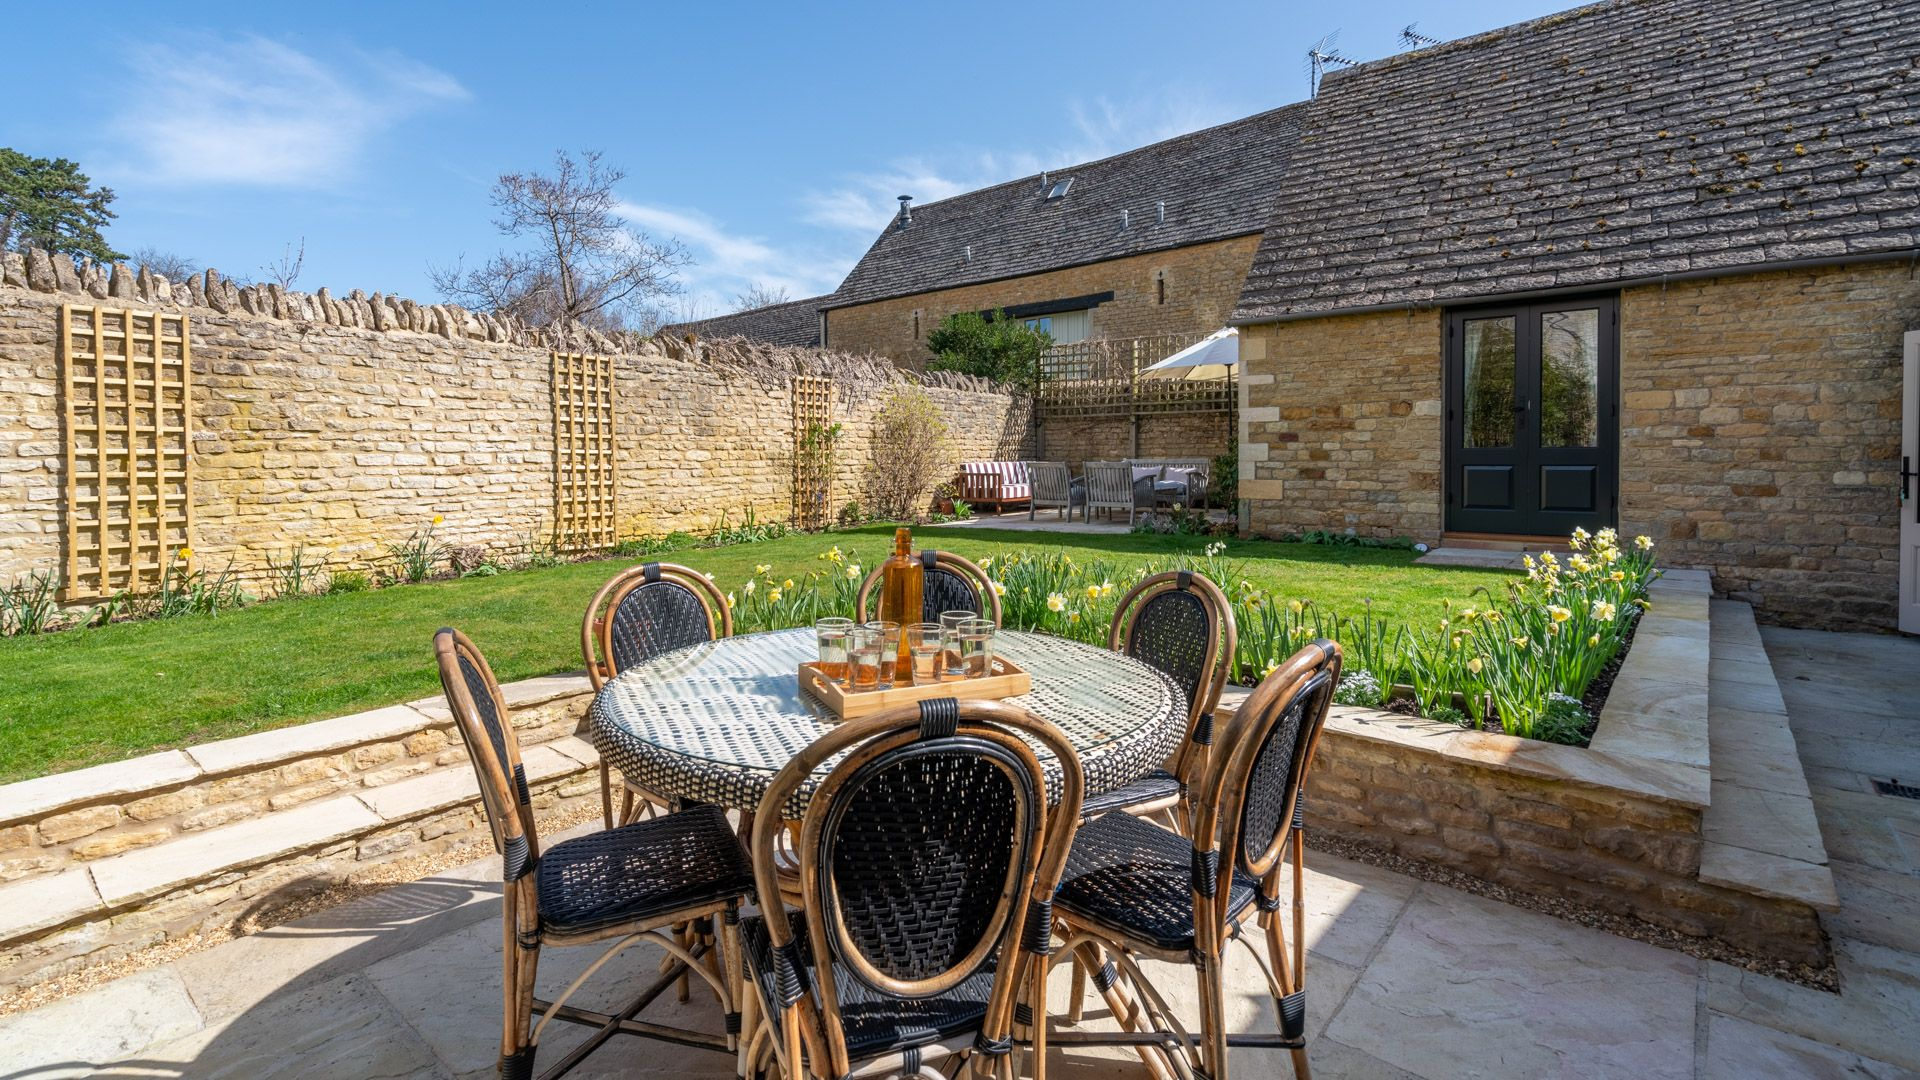 Rear garden patio with dining area and comfy seating & BBQ in the far corner, Quail House, Bolthole Retreats